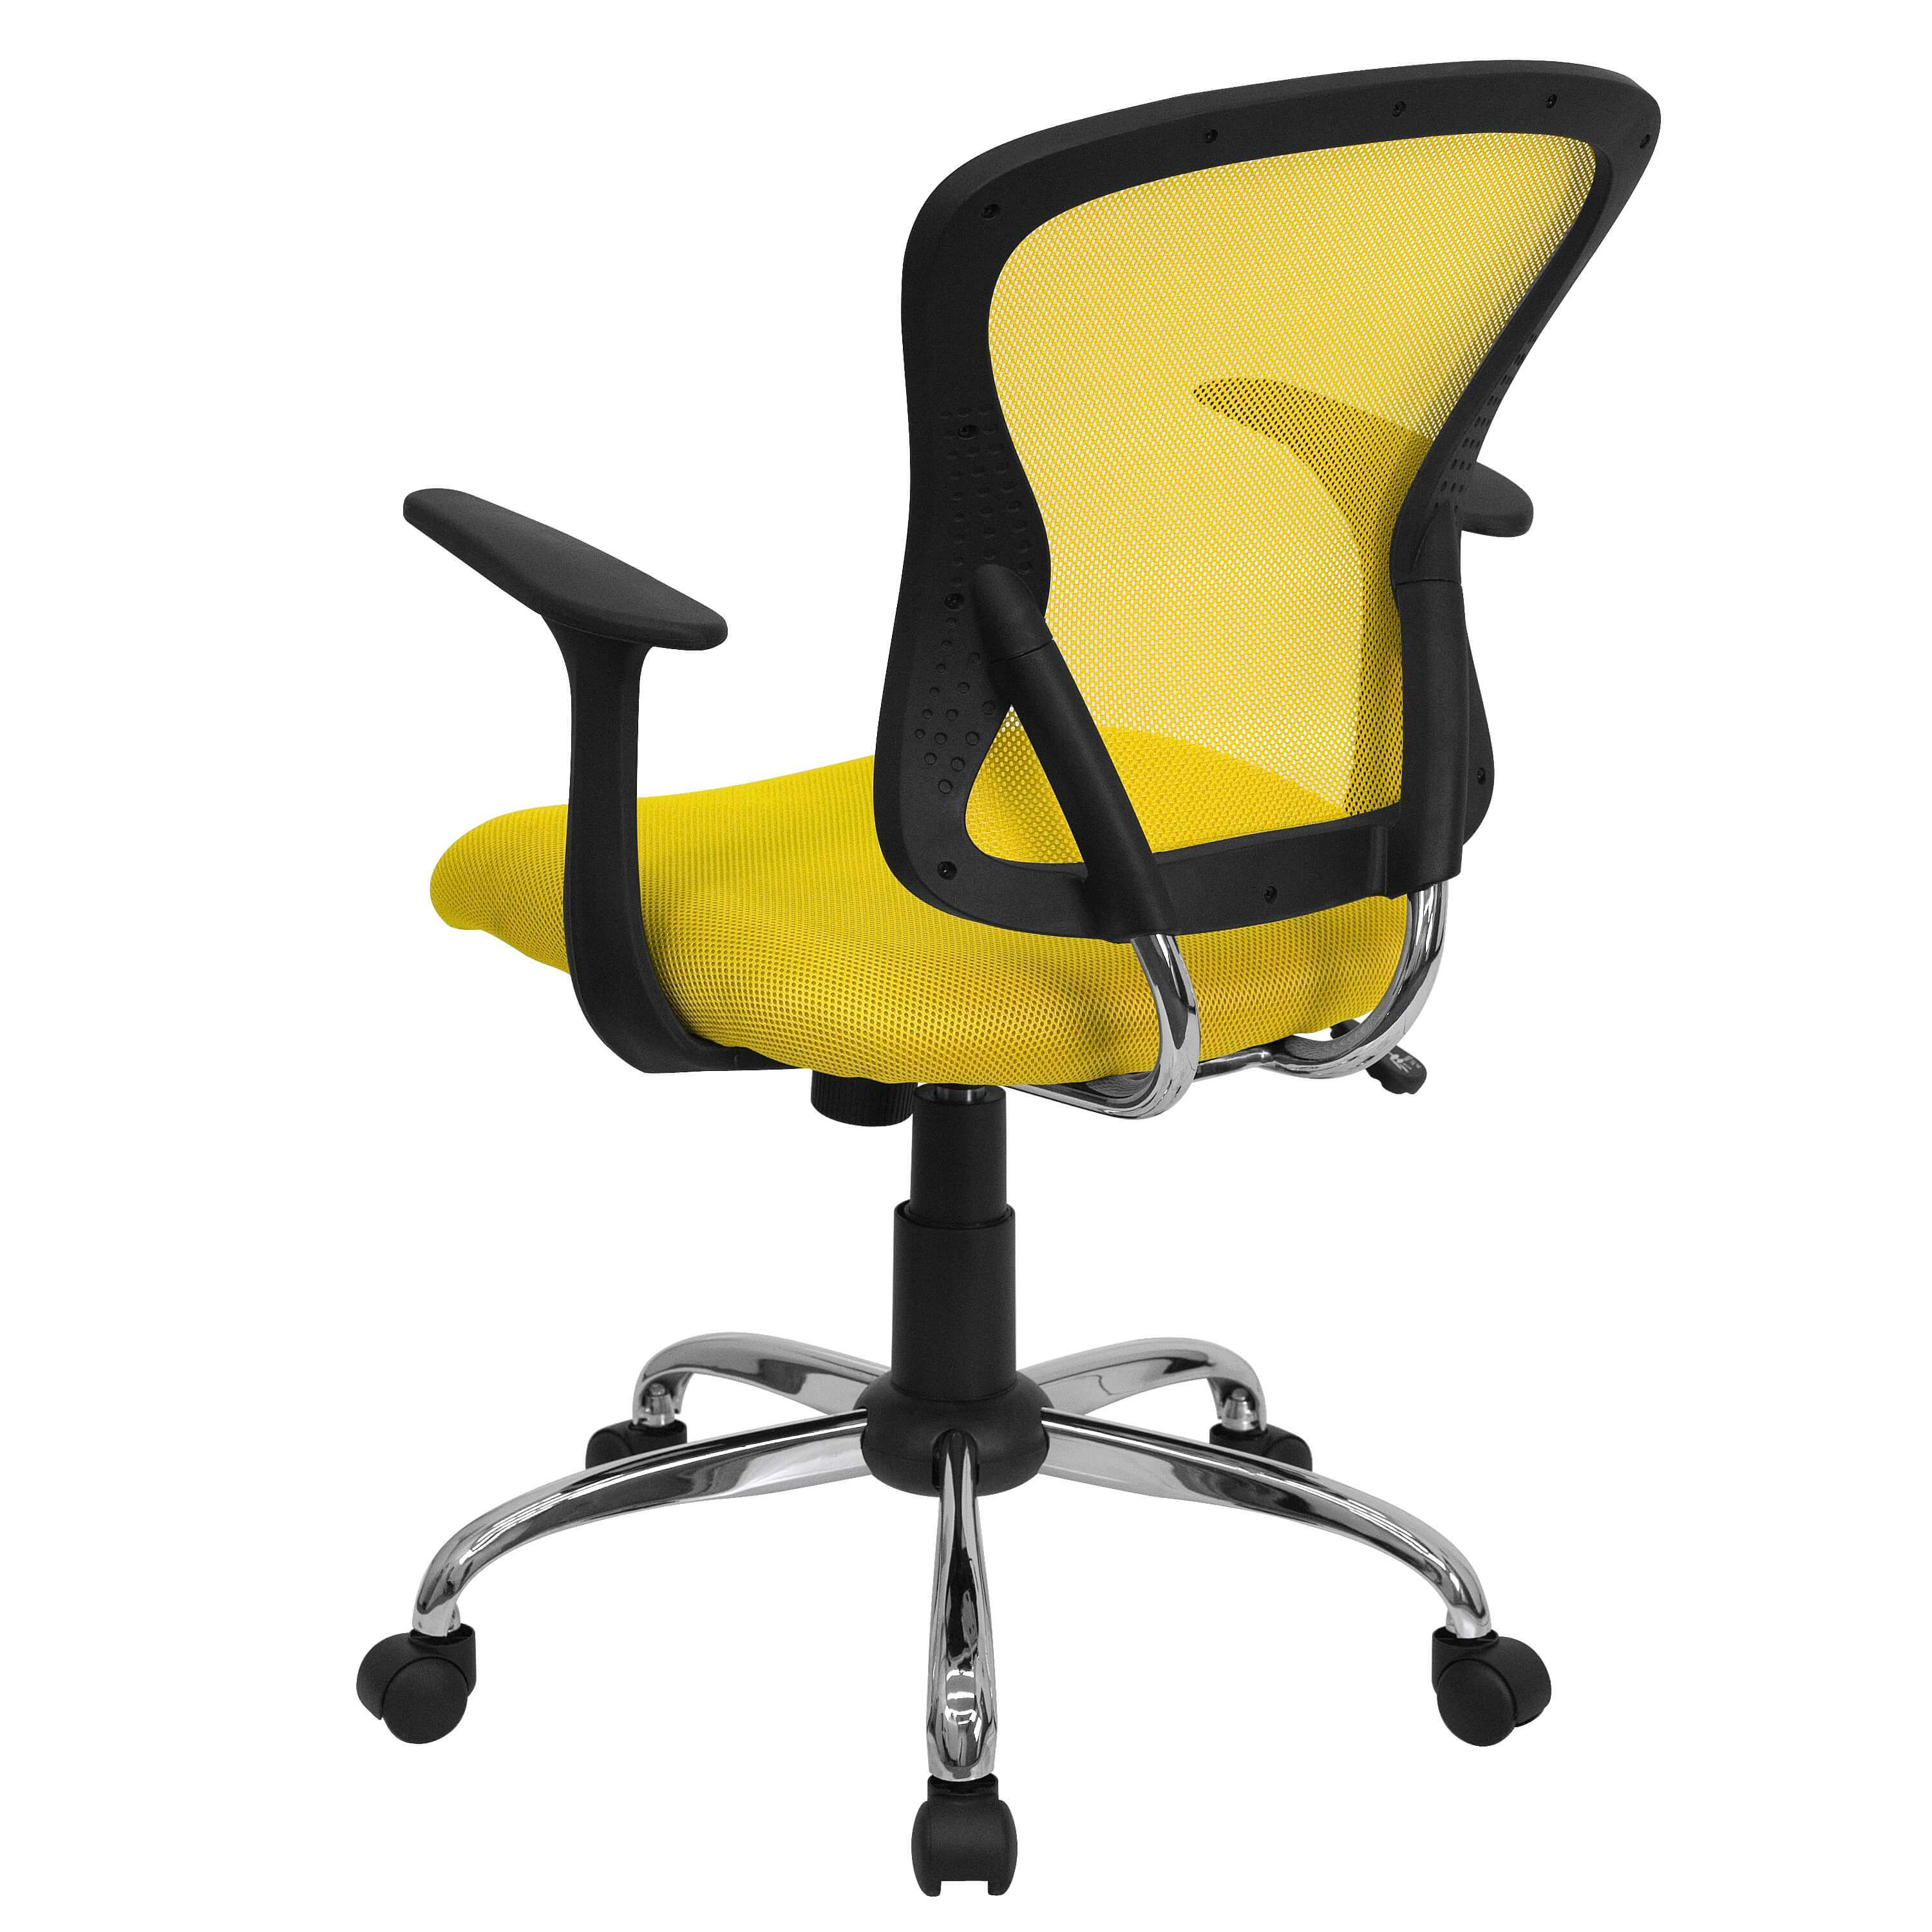 Mesh office chair rear view